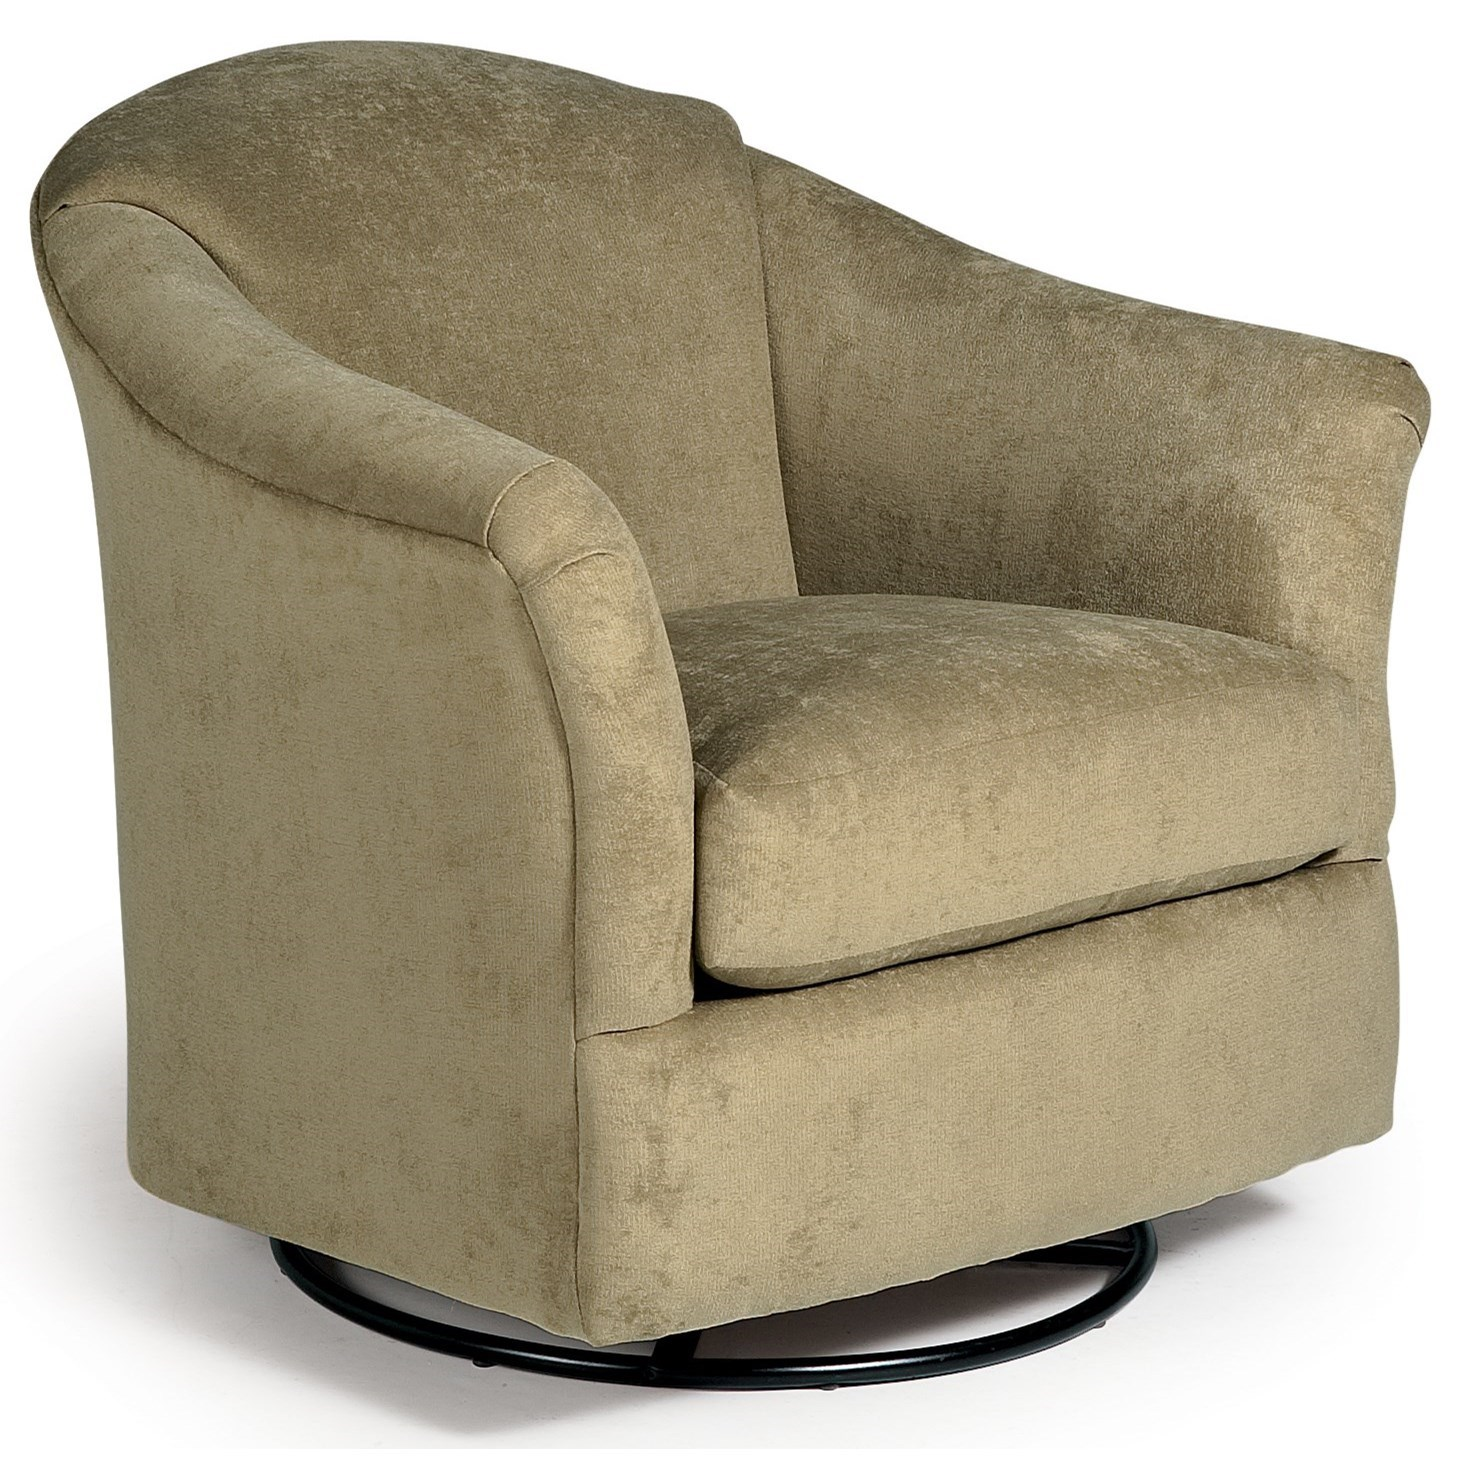 Upholstered Glider Chair Vendor 411 Chairs Swivel Glide Darby Swivel Glider Chair